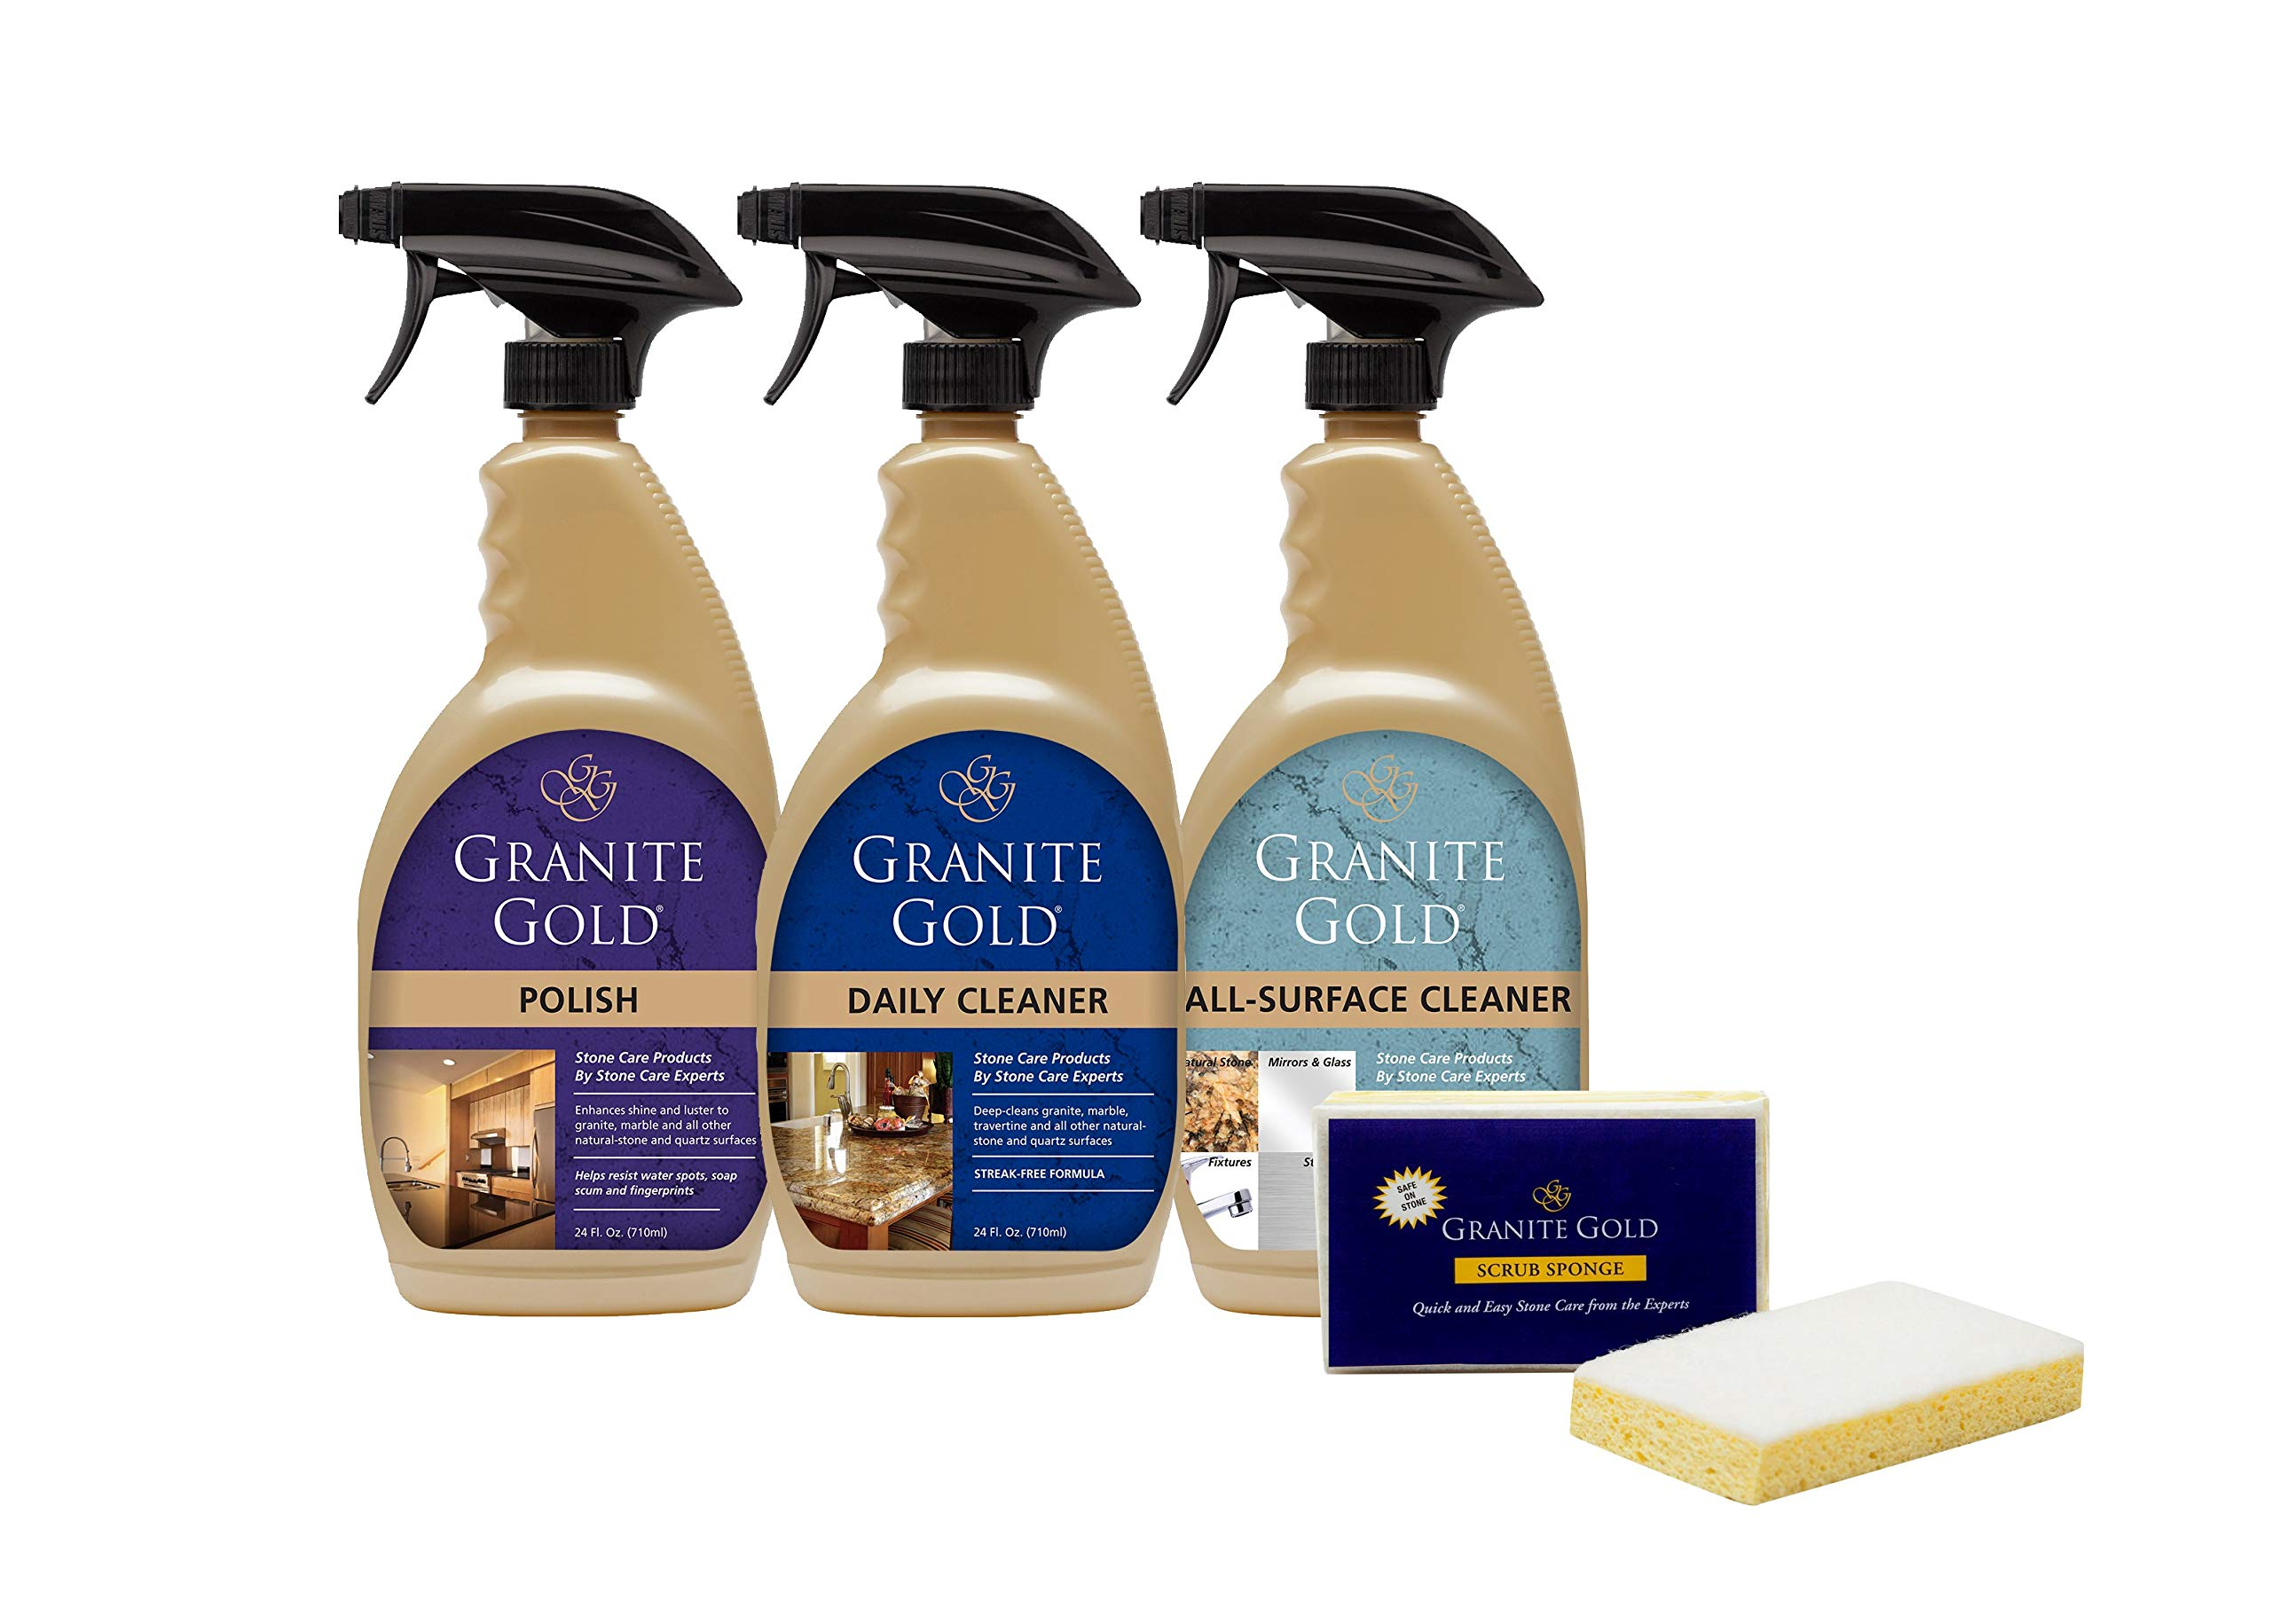 Granite Gold Home Care Collection - Natural Stone, Granite Cleaner, Polish And All-Surface Cleaner Combo Pack by Granite Gold